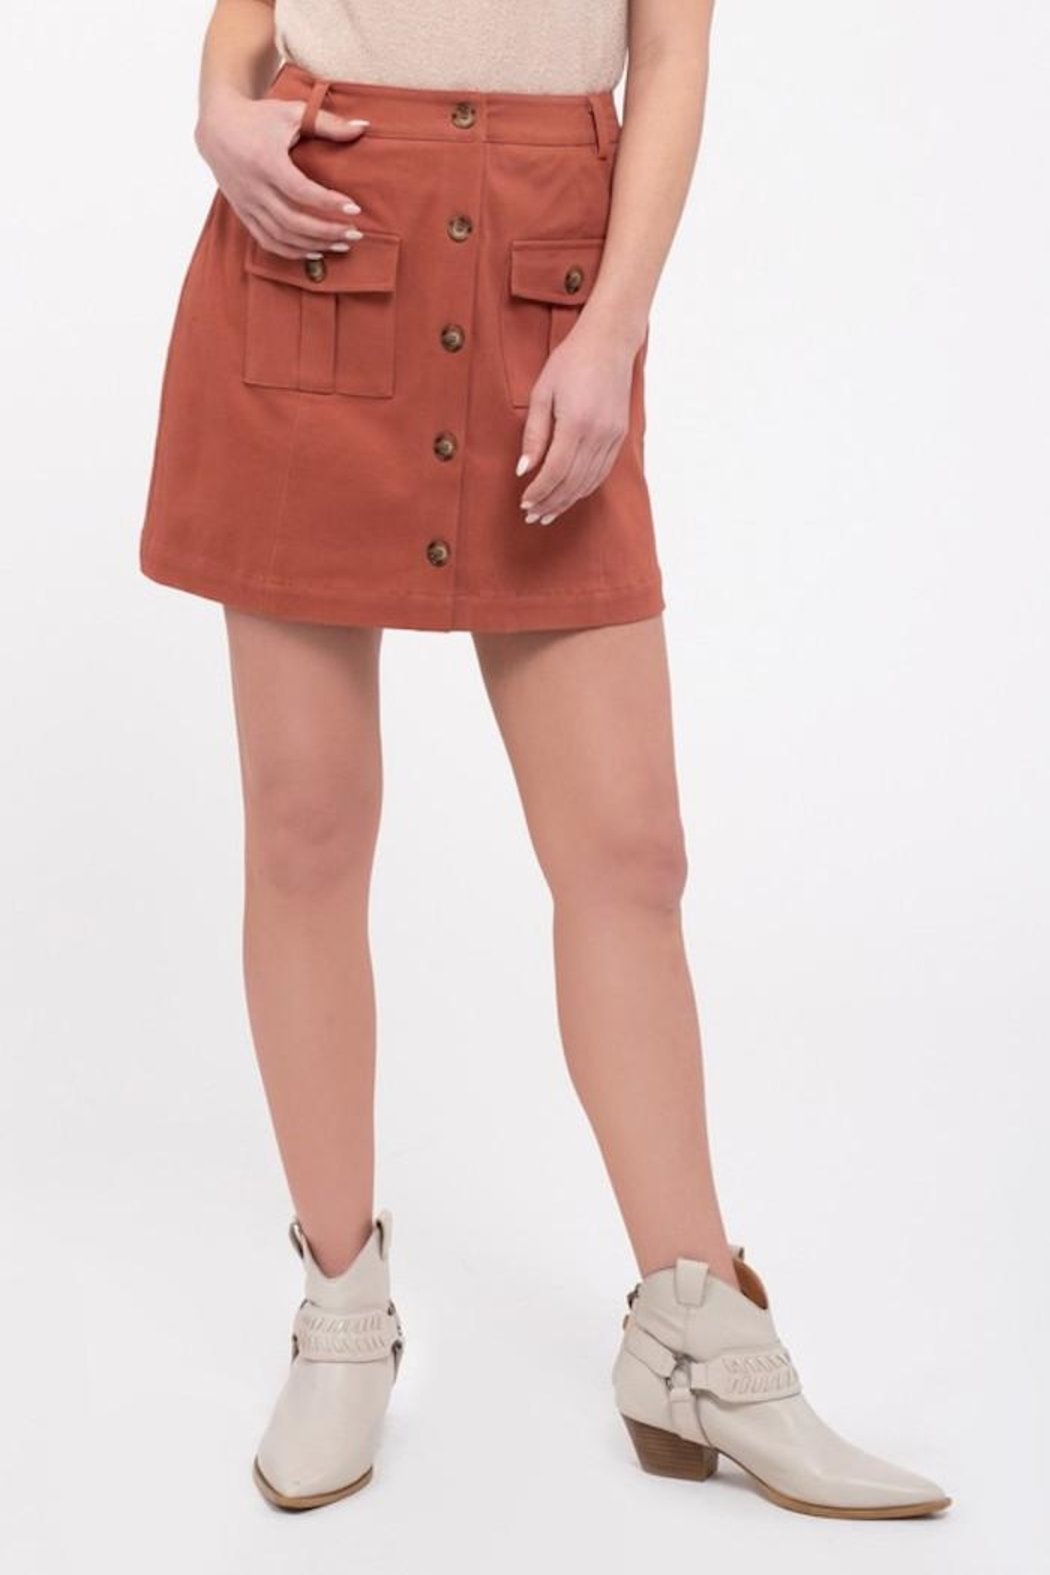 Blu Pepper Button Front Skirt - Front Full Image